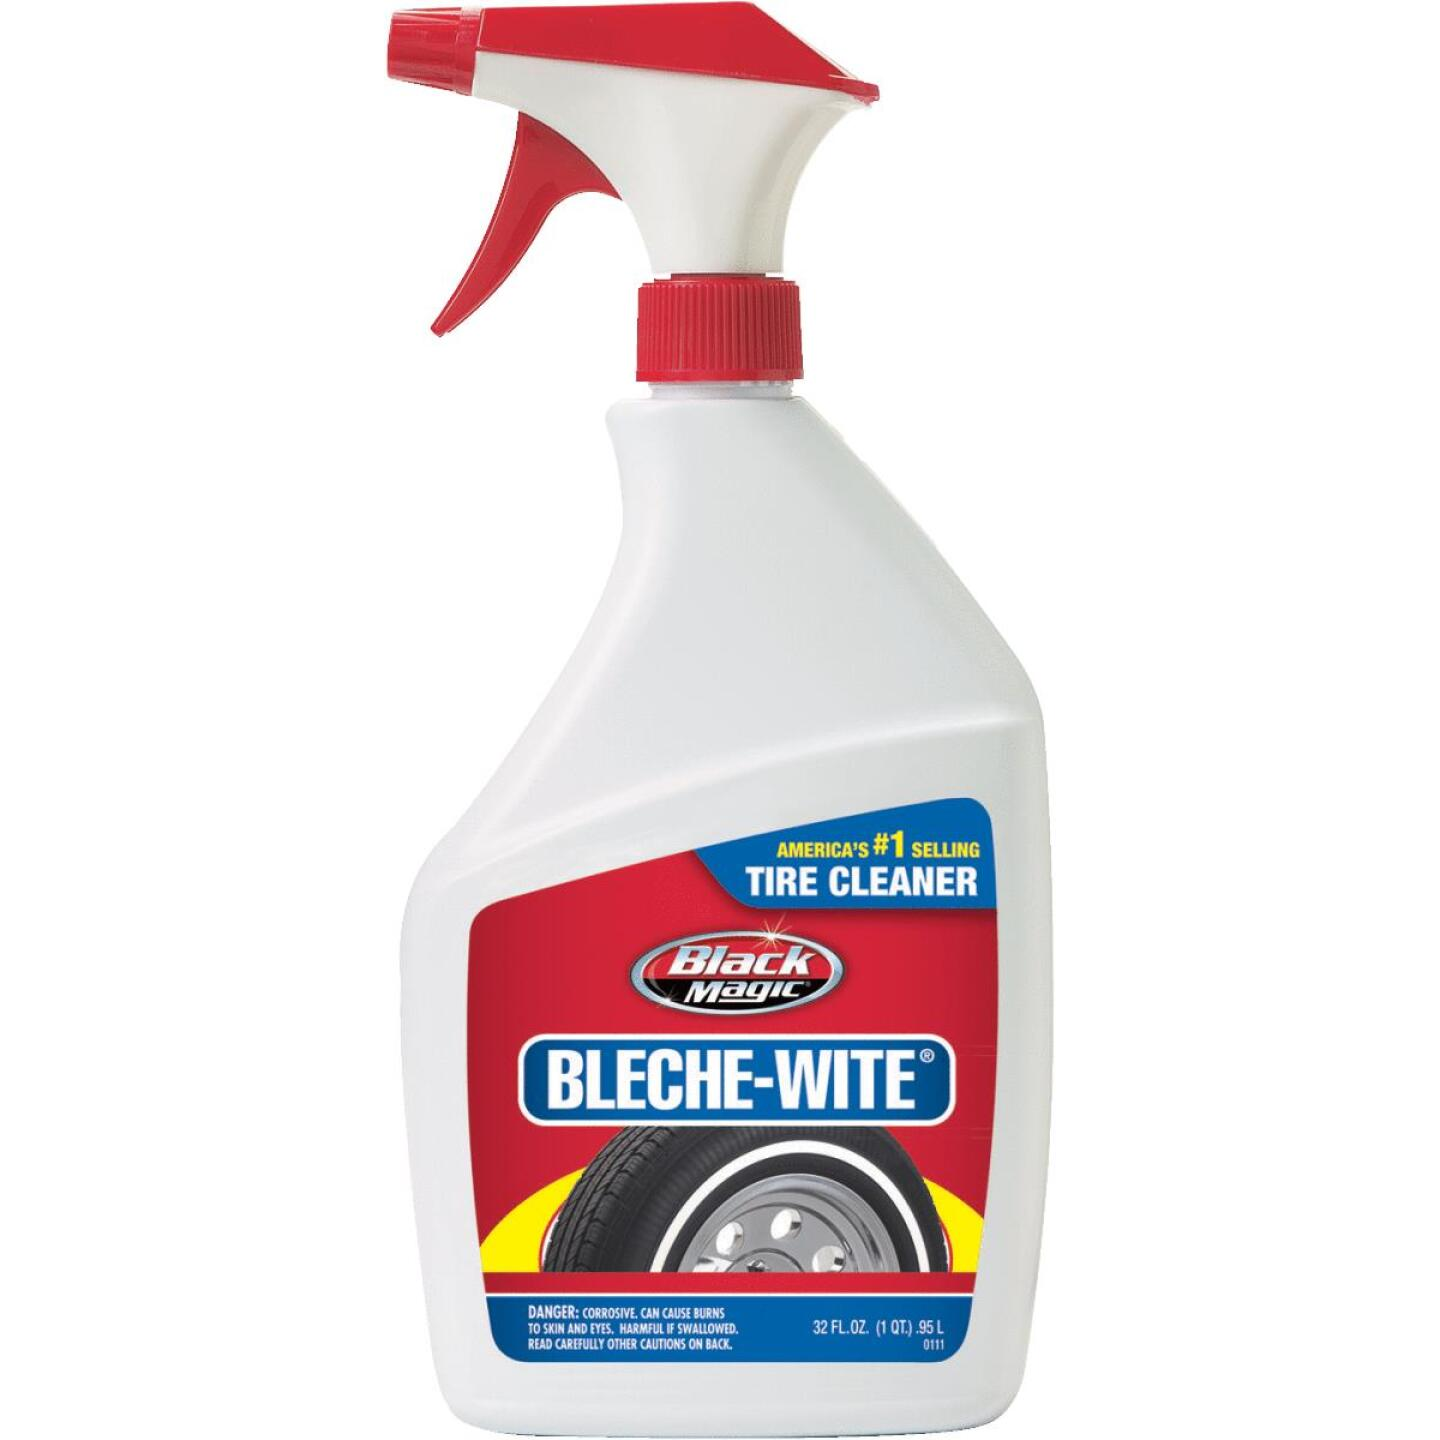 Black Magic Bleche-wite 32 oz Trigger Spray Tire Cleaner Image 1